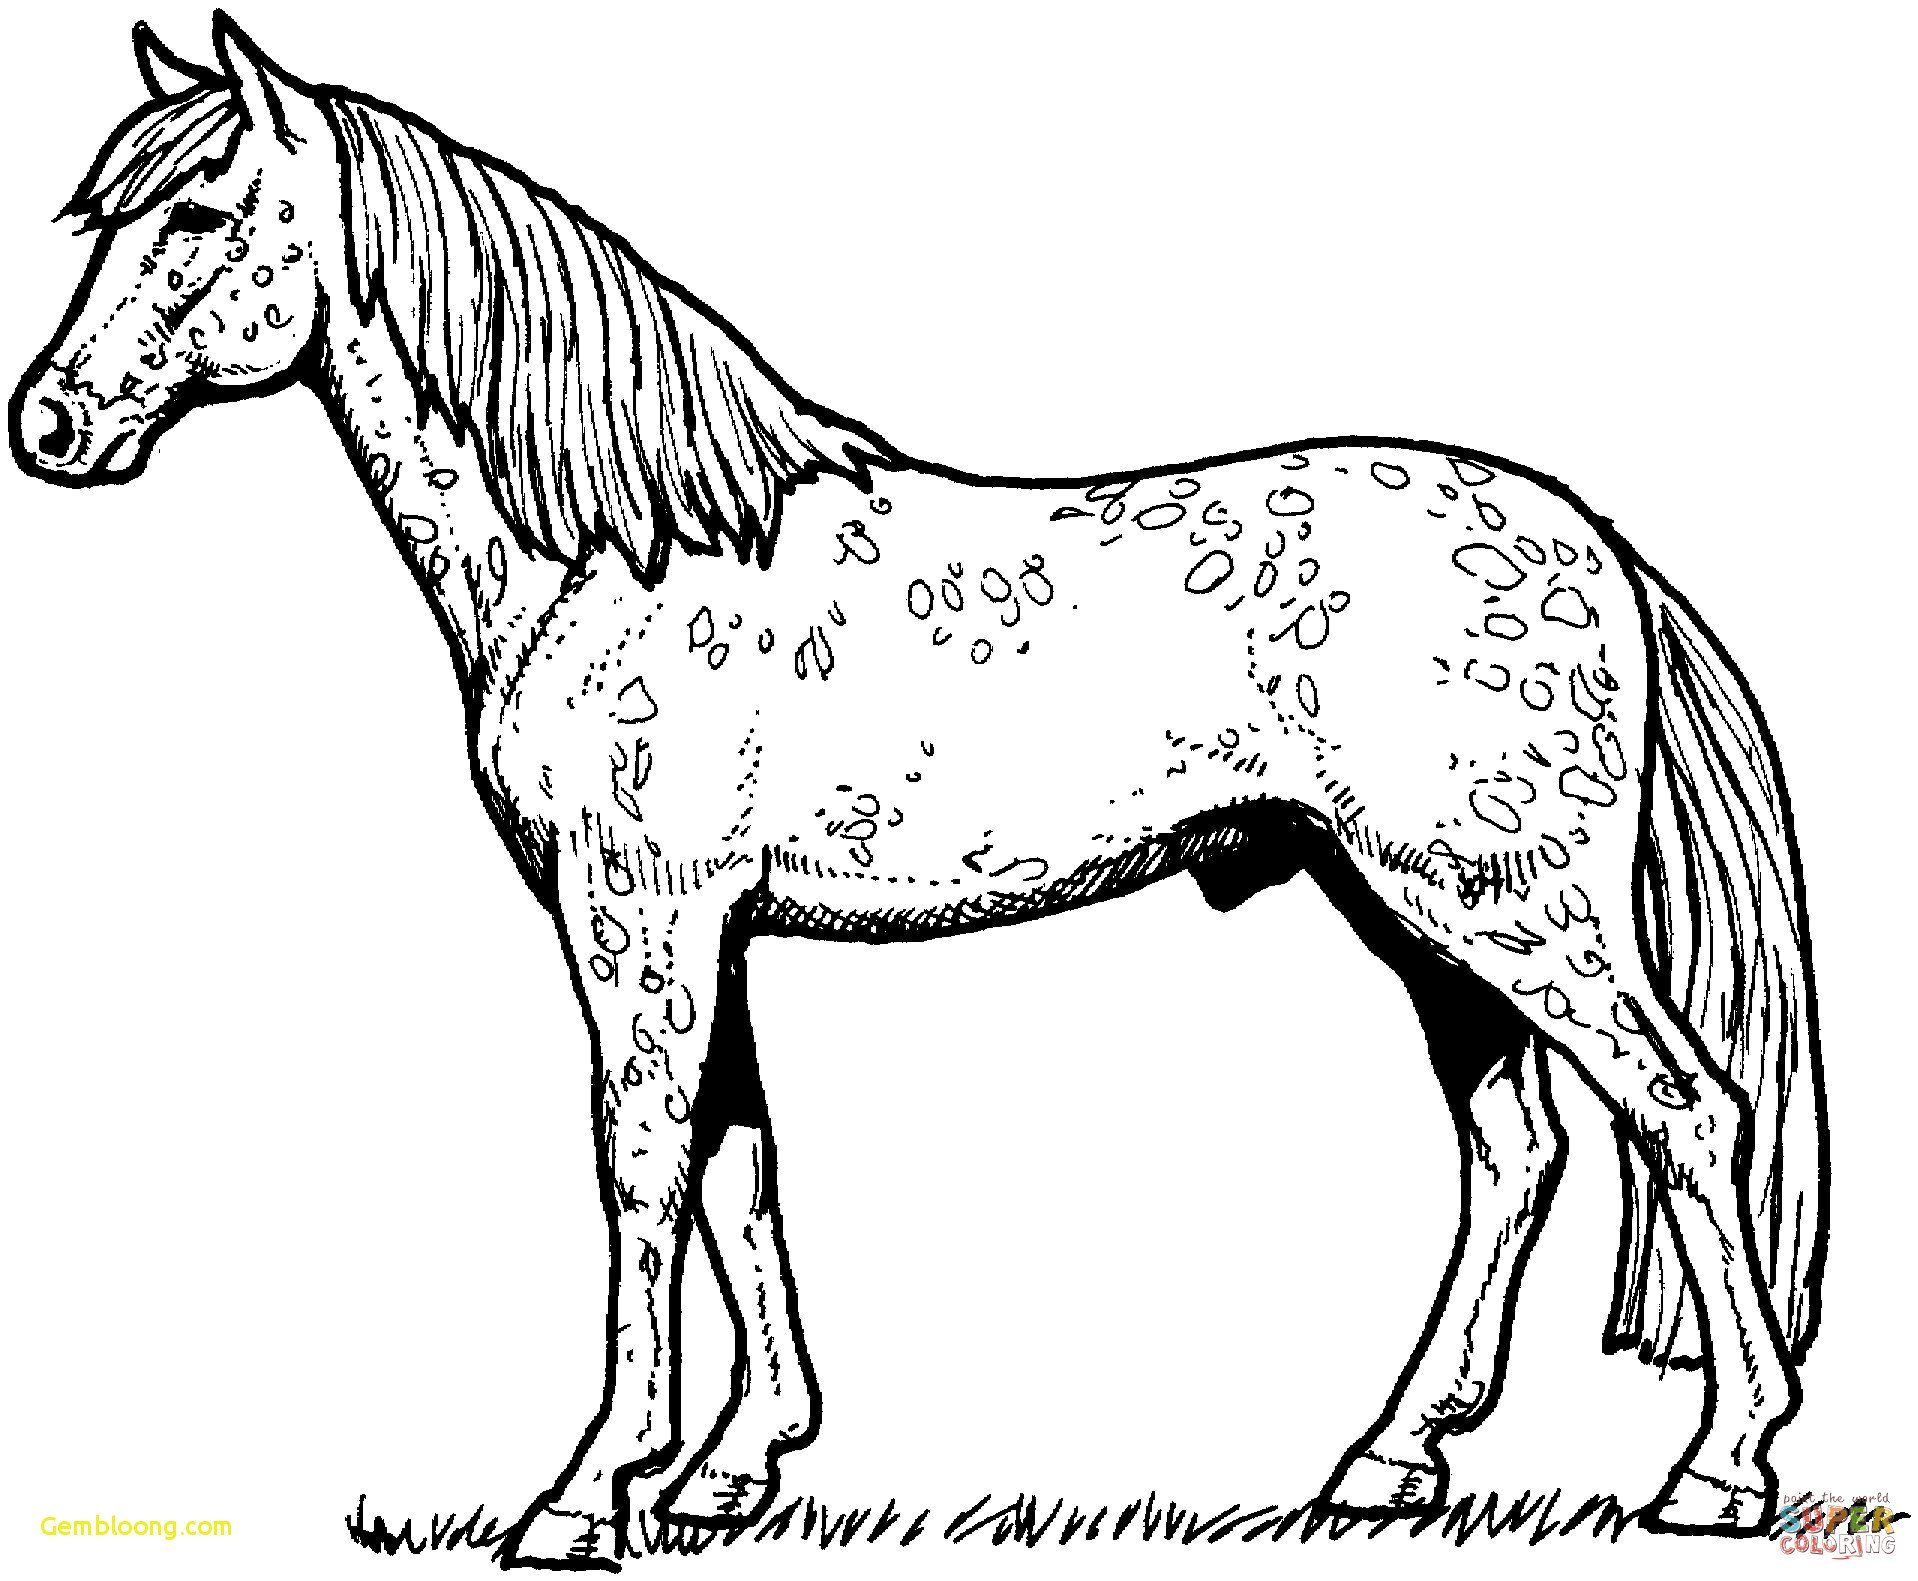 Printable Horse Coloring Pages Fresh Horse Drawing Pages At Paintingvalley Horse Coloring Pages Horse Coloring Books Horse Coloring